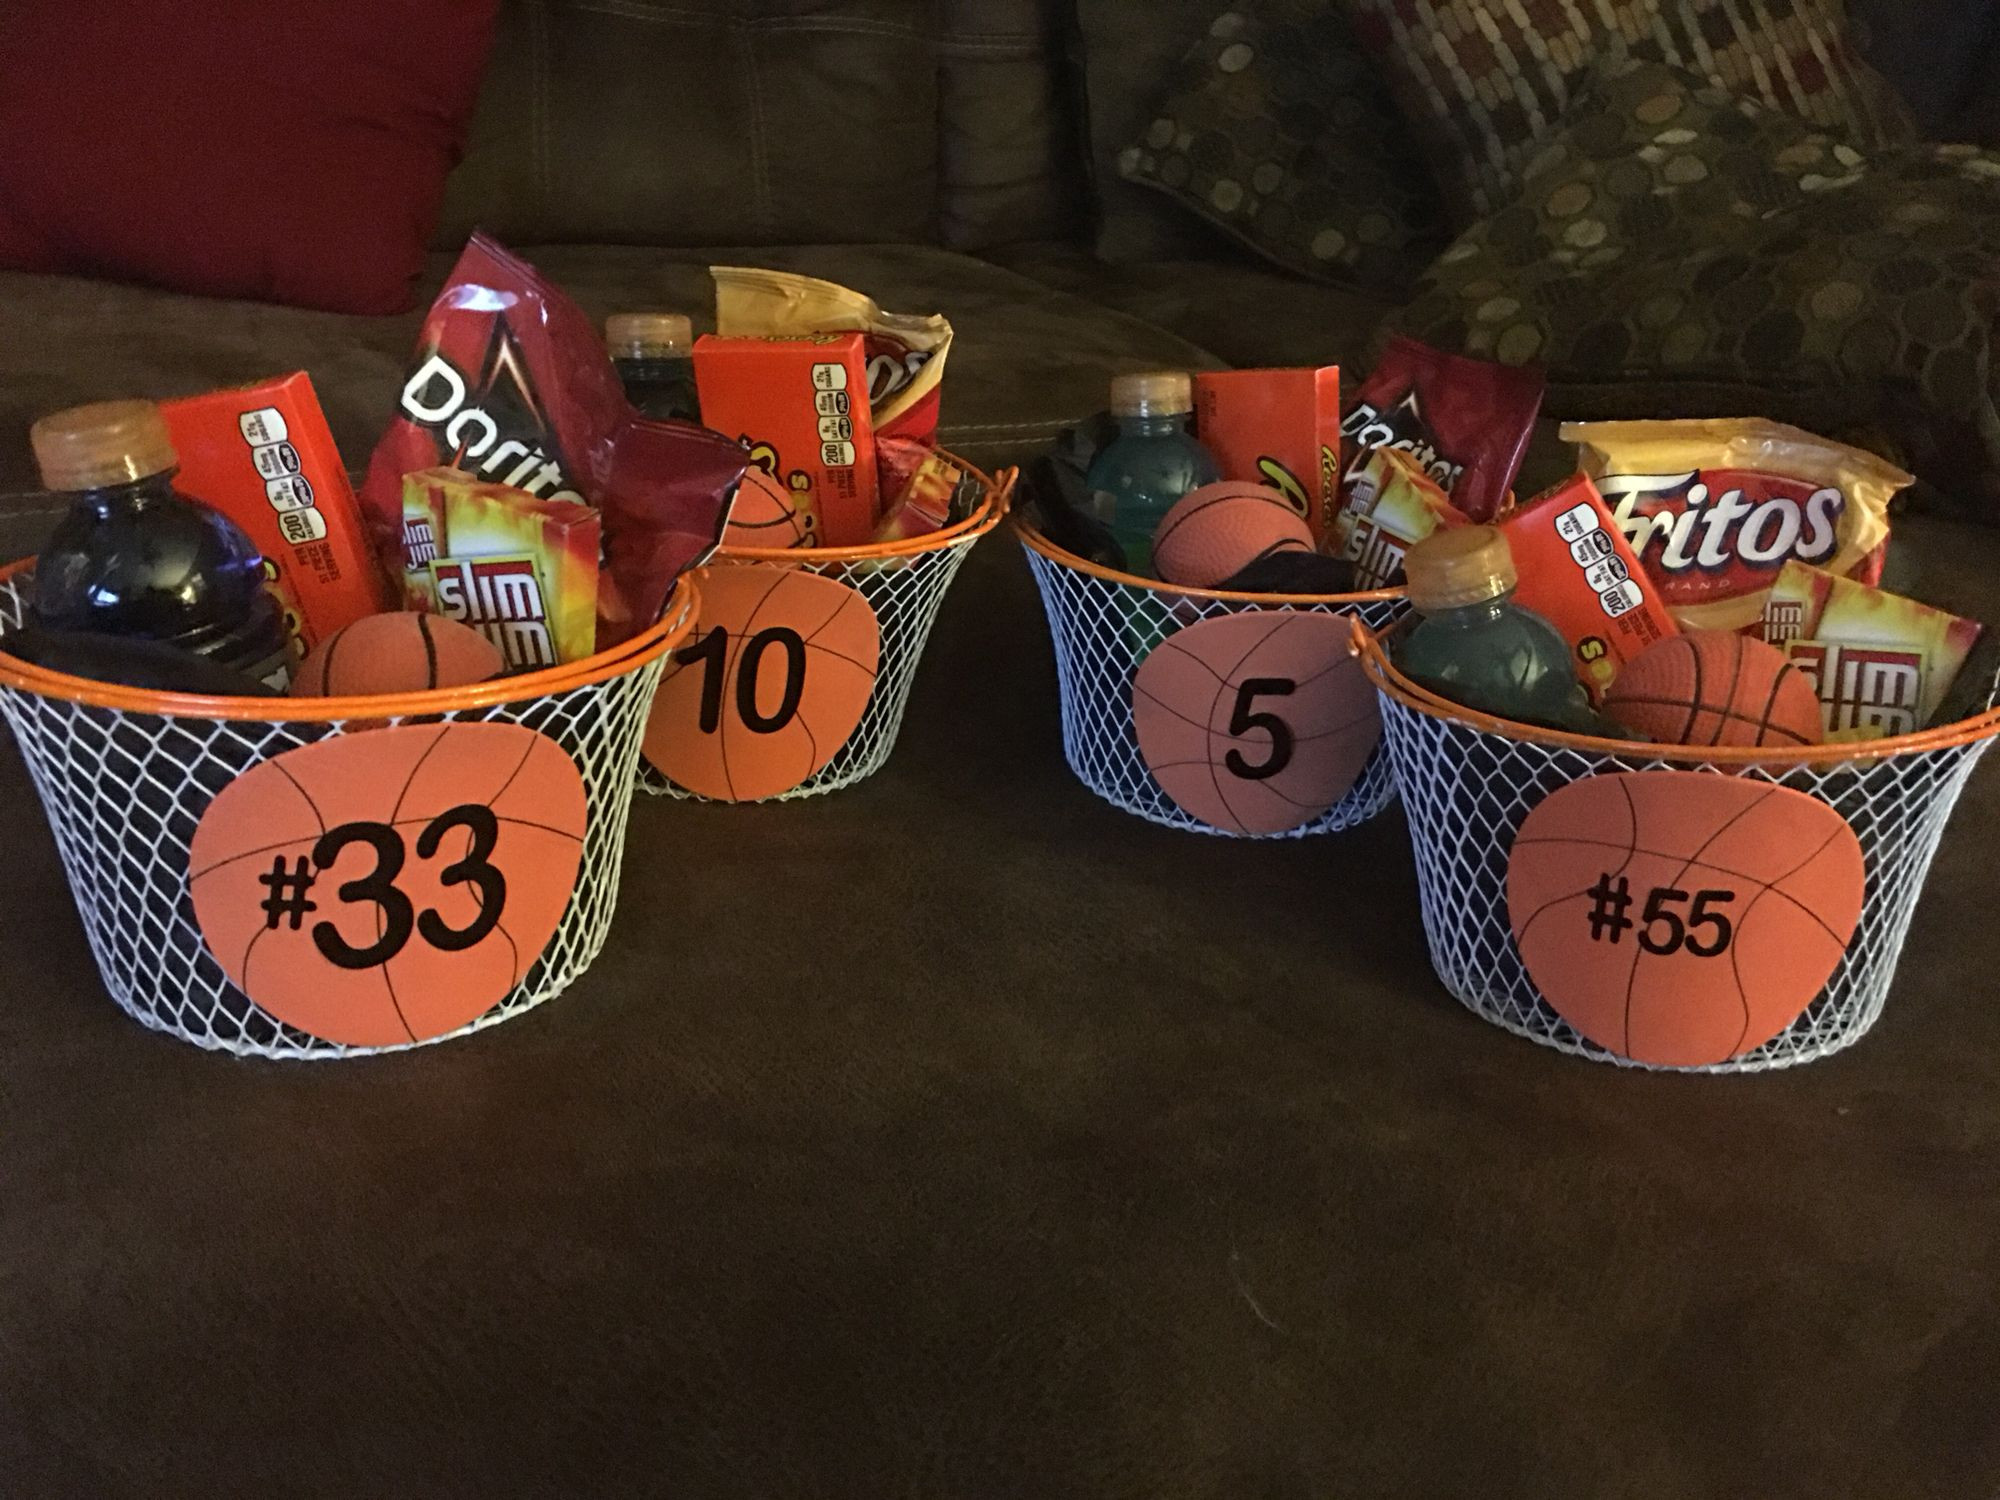 Best ideas about Basketball Gift Ideas . Save or Pin 8th grade Basketball t baskets DIY crafts Now.